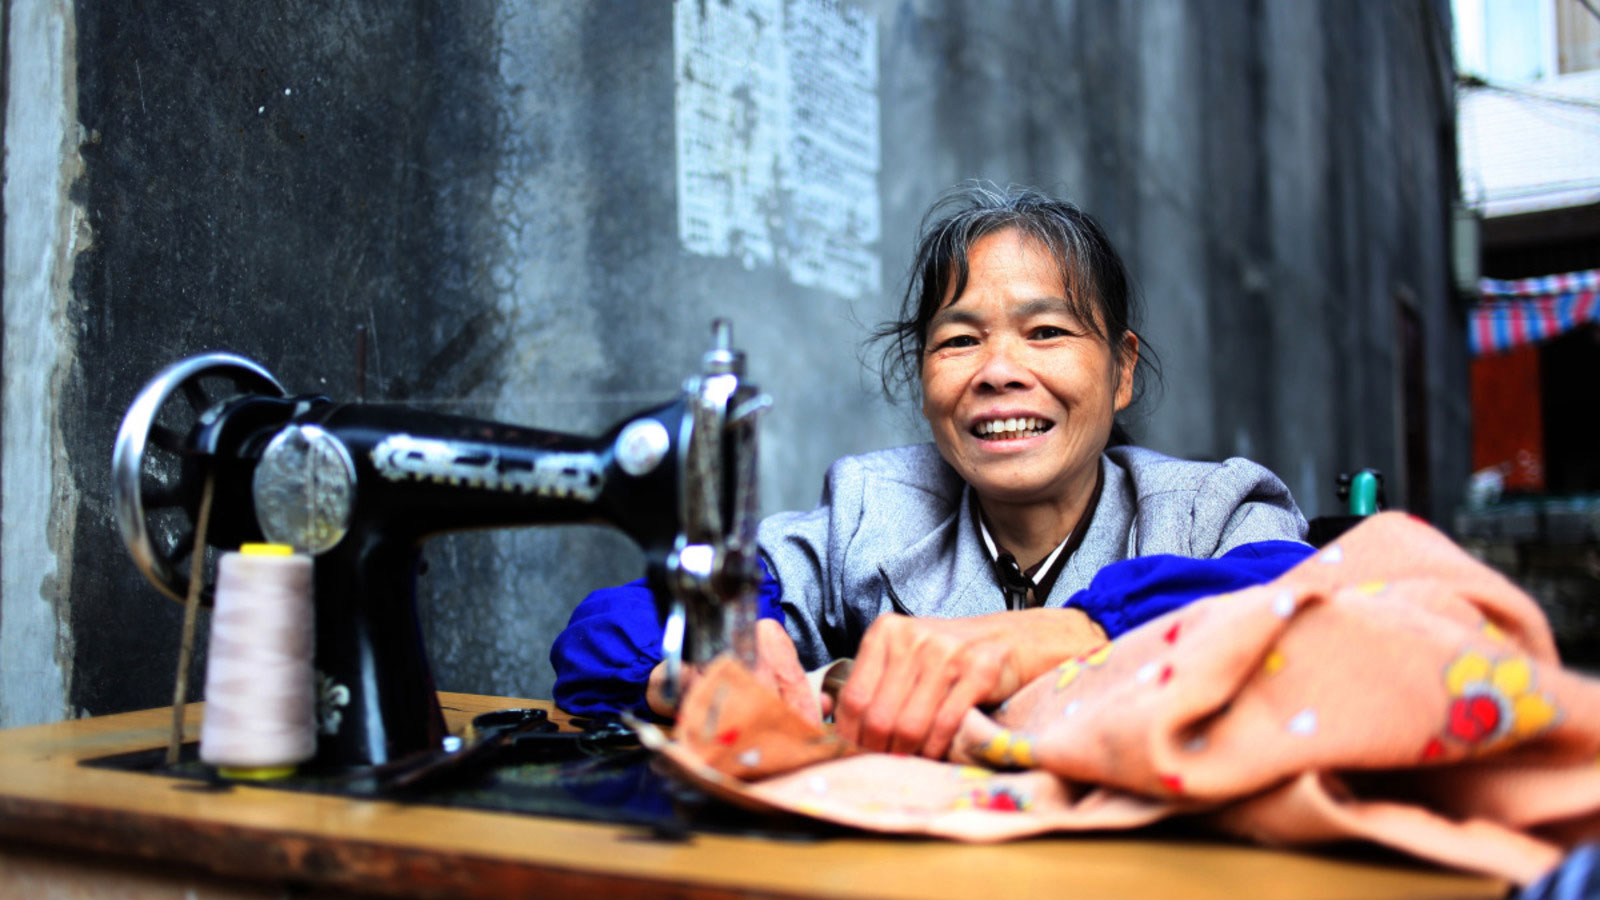 Lan Yuefeng sews a piece of clothing in China